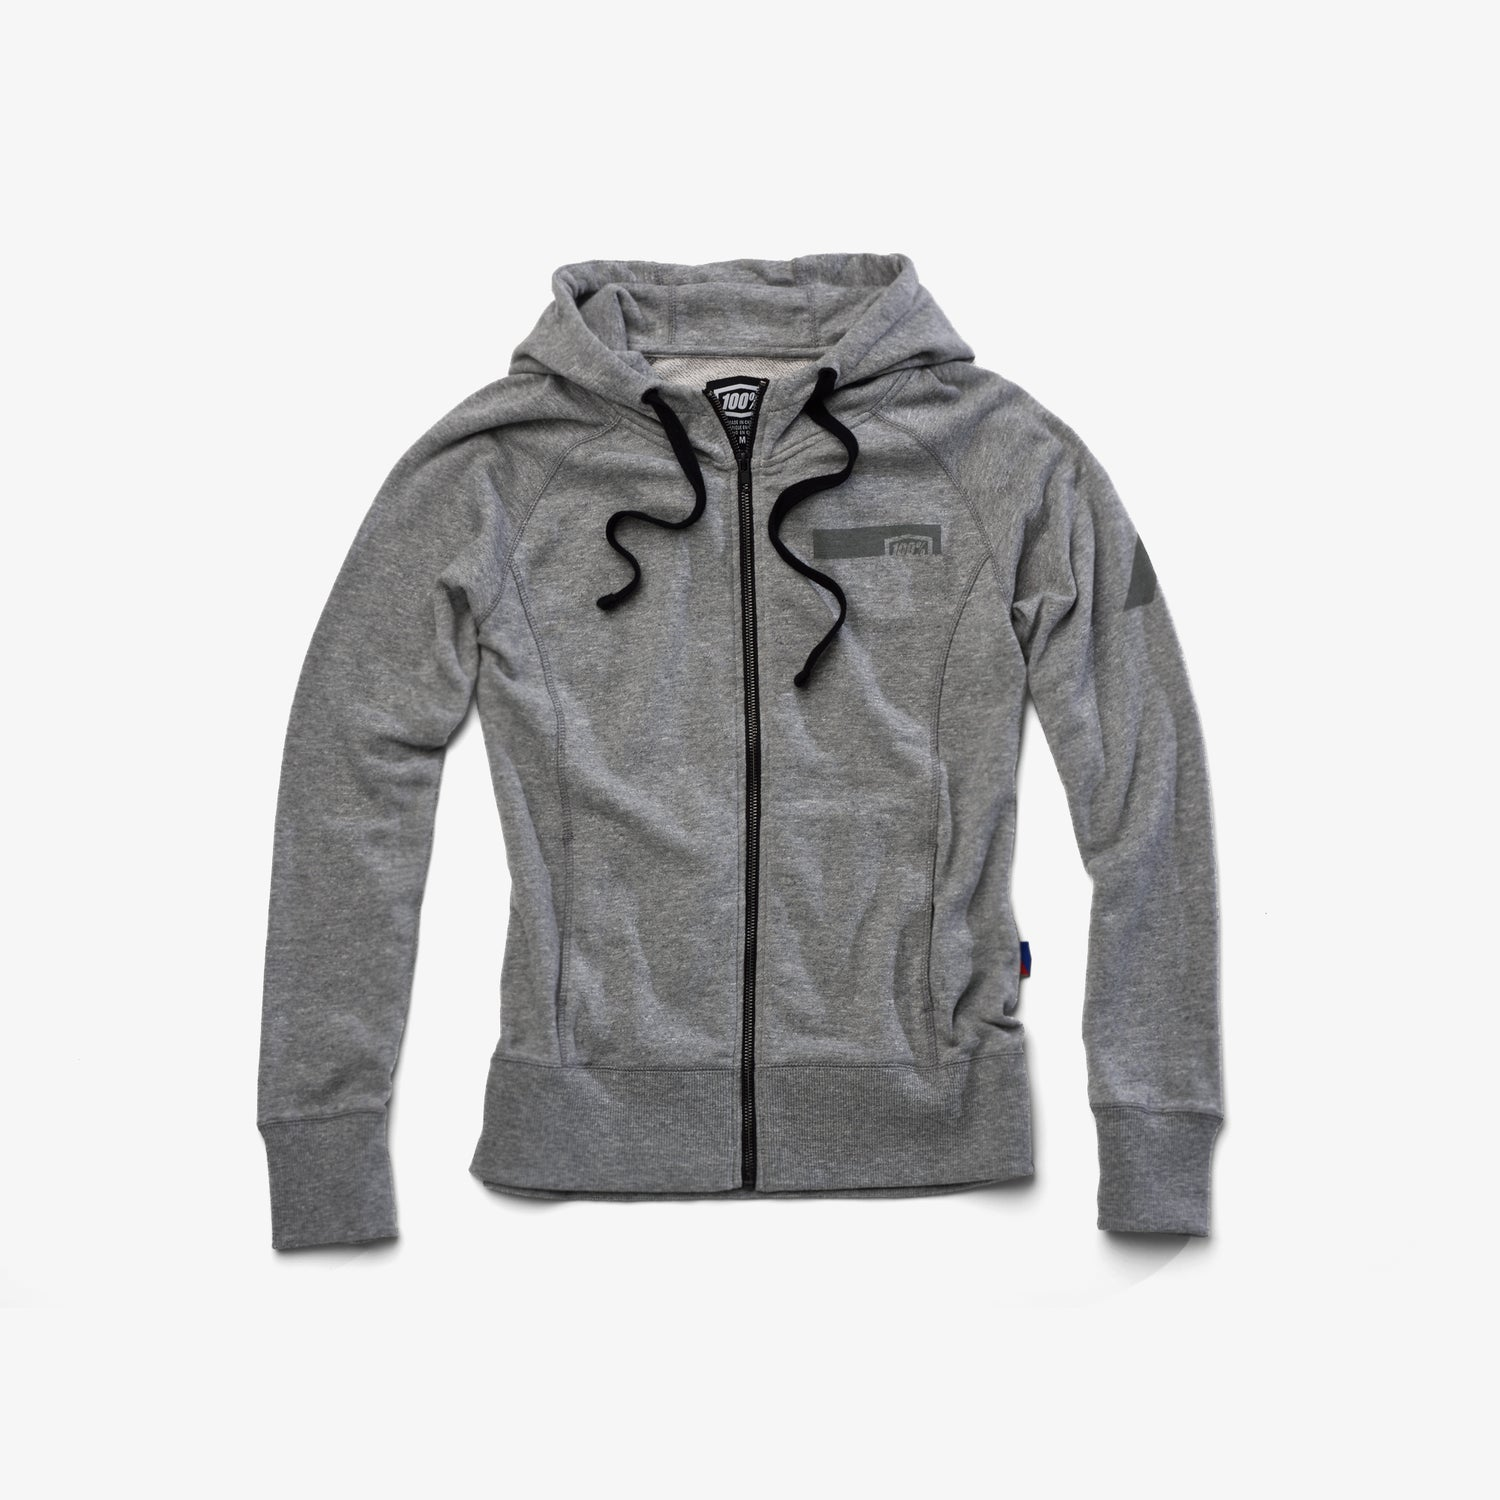 JOURNEY Zip Hooded Sweatshirt - Gunmetal Heather -  Womens